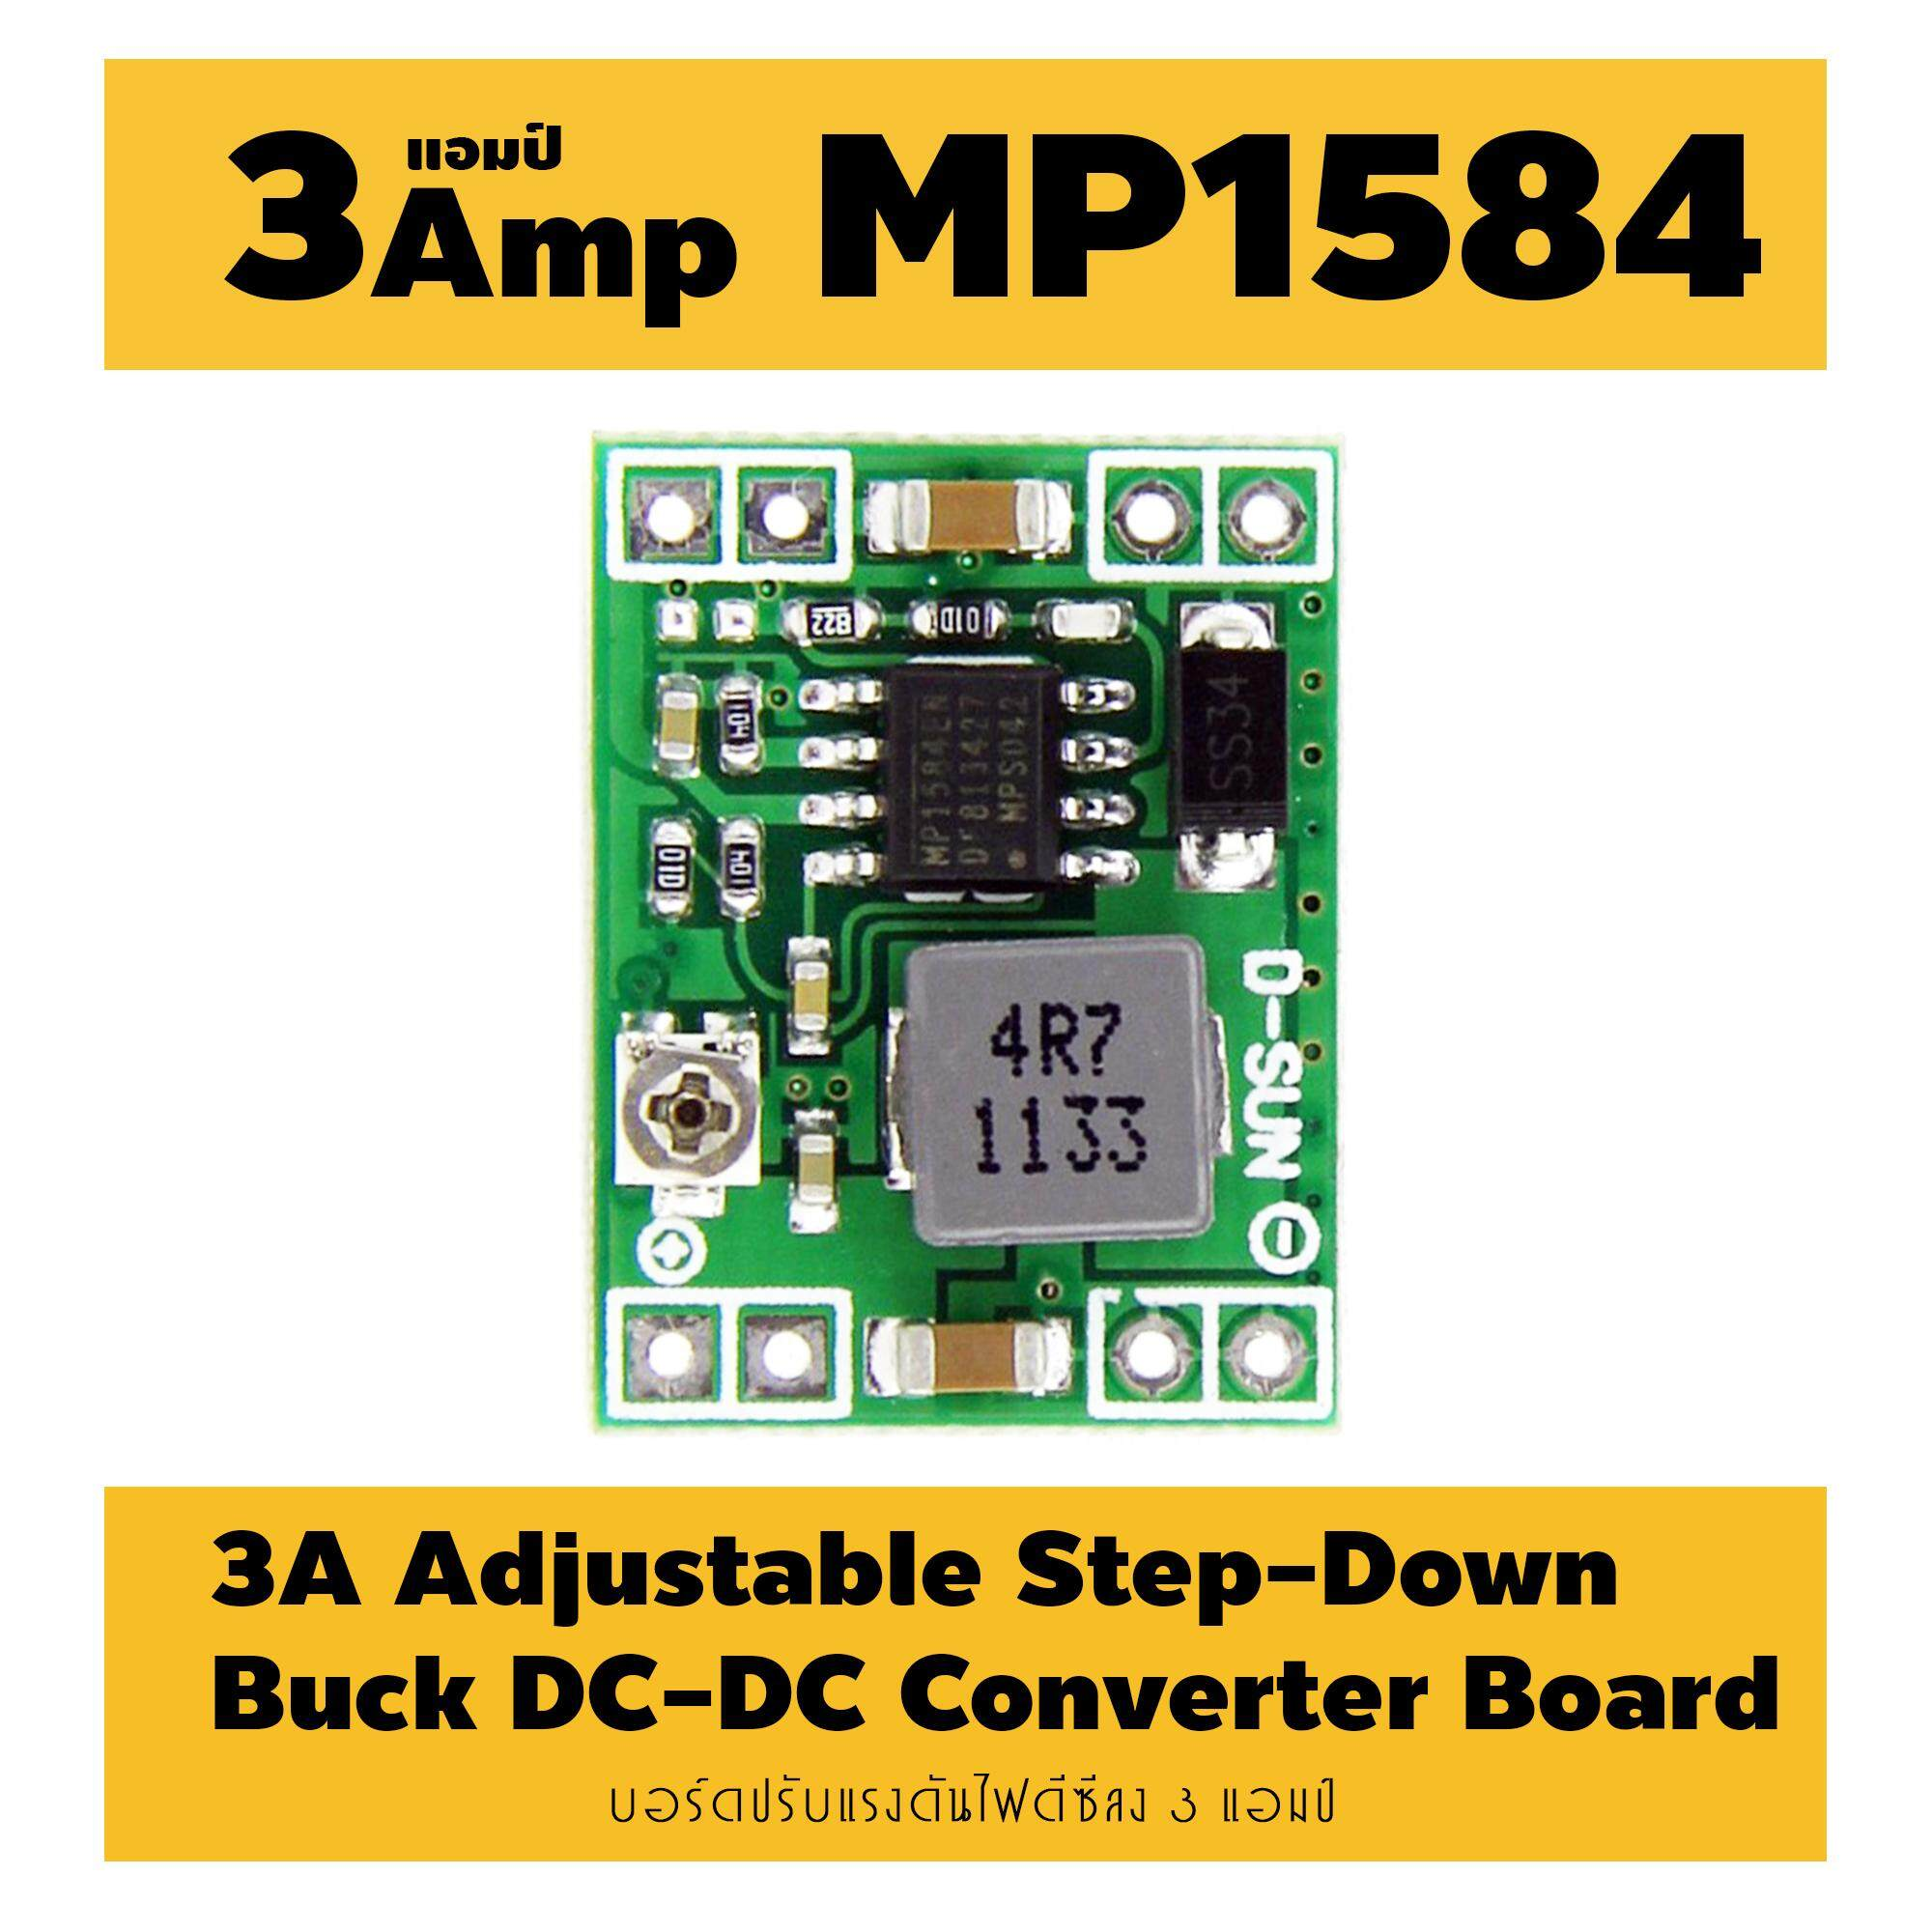 Sell Buck 8 Cheapest Best Quality Th Store Module Mini 360 Dc Converter Step Down 475v 23v To 1v 17v 17x11x38mm Mini360 New Lm2596